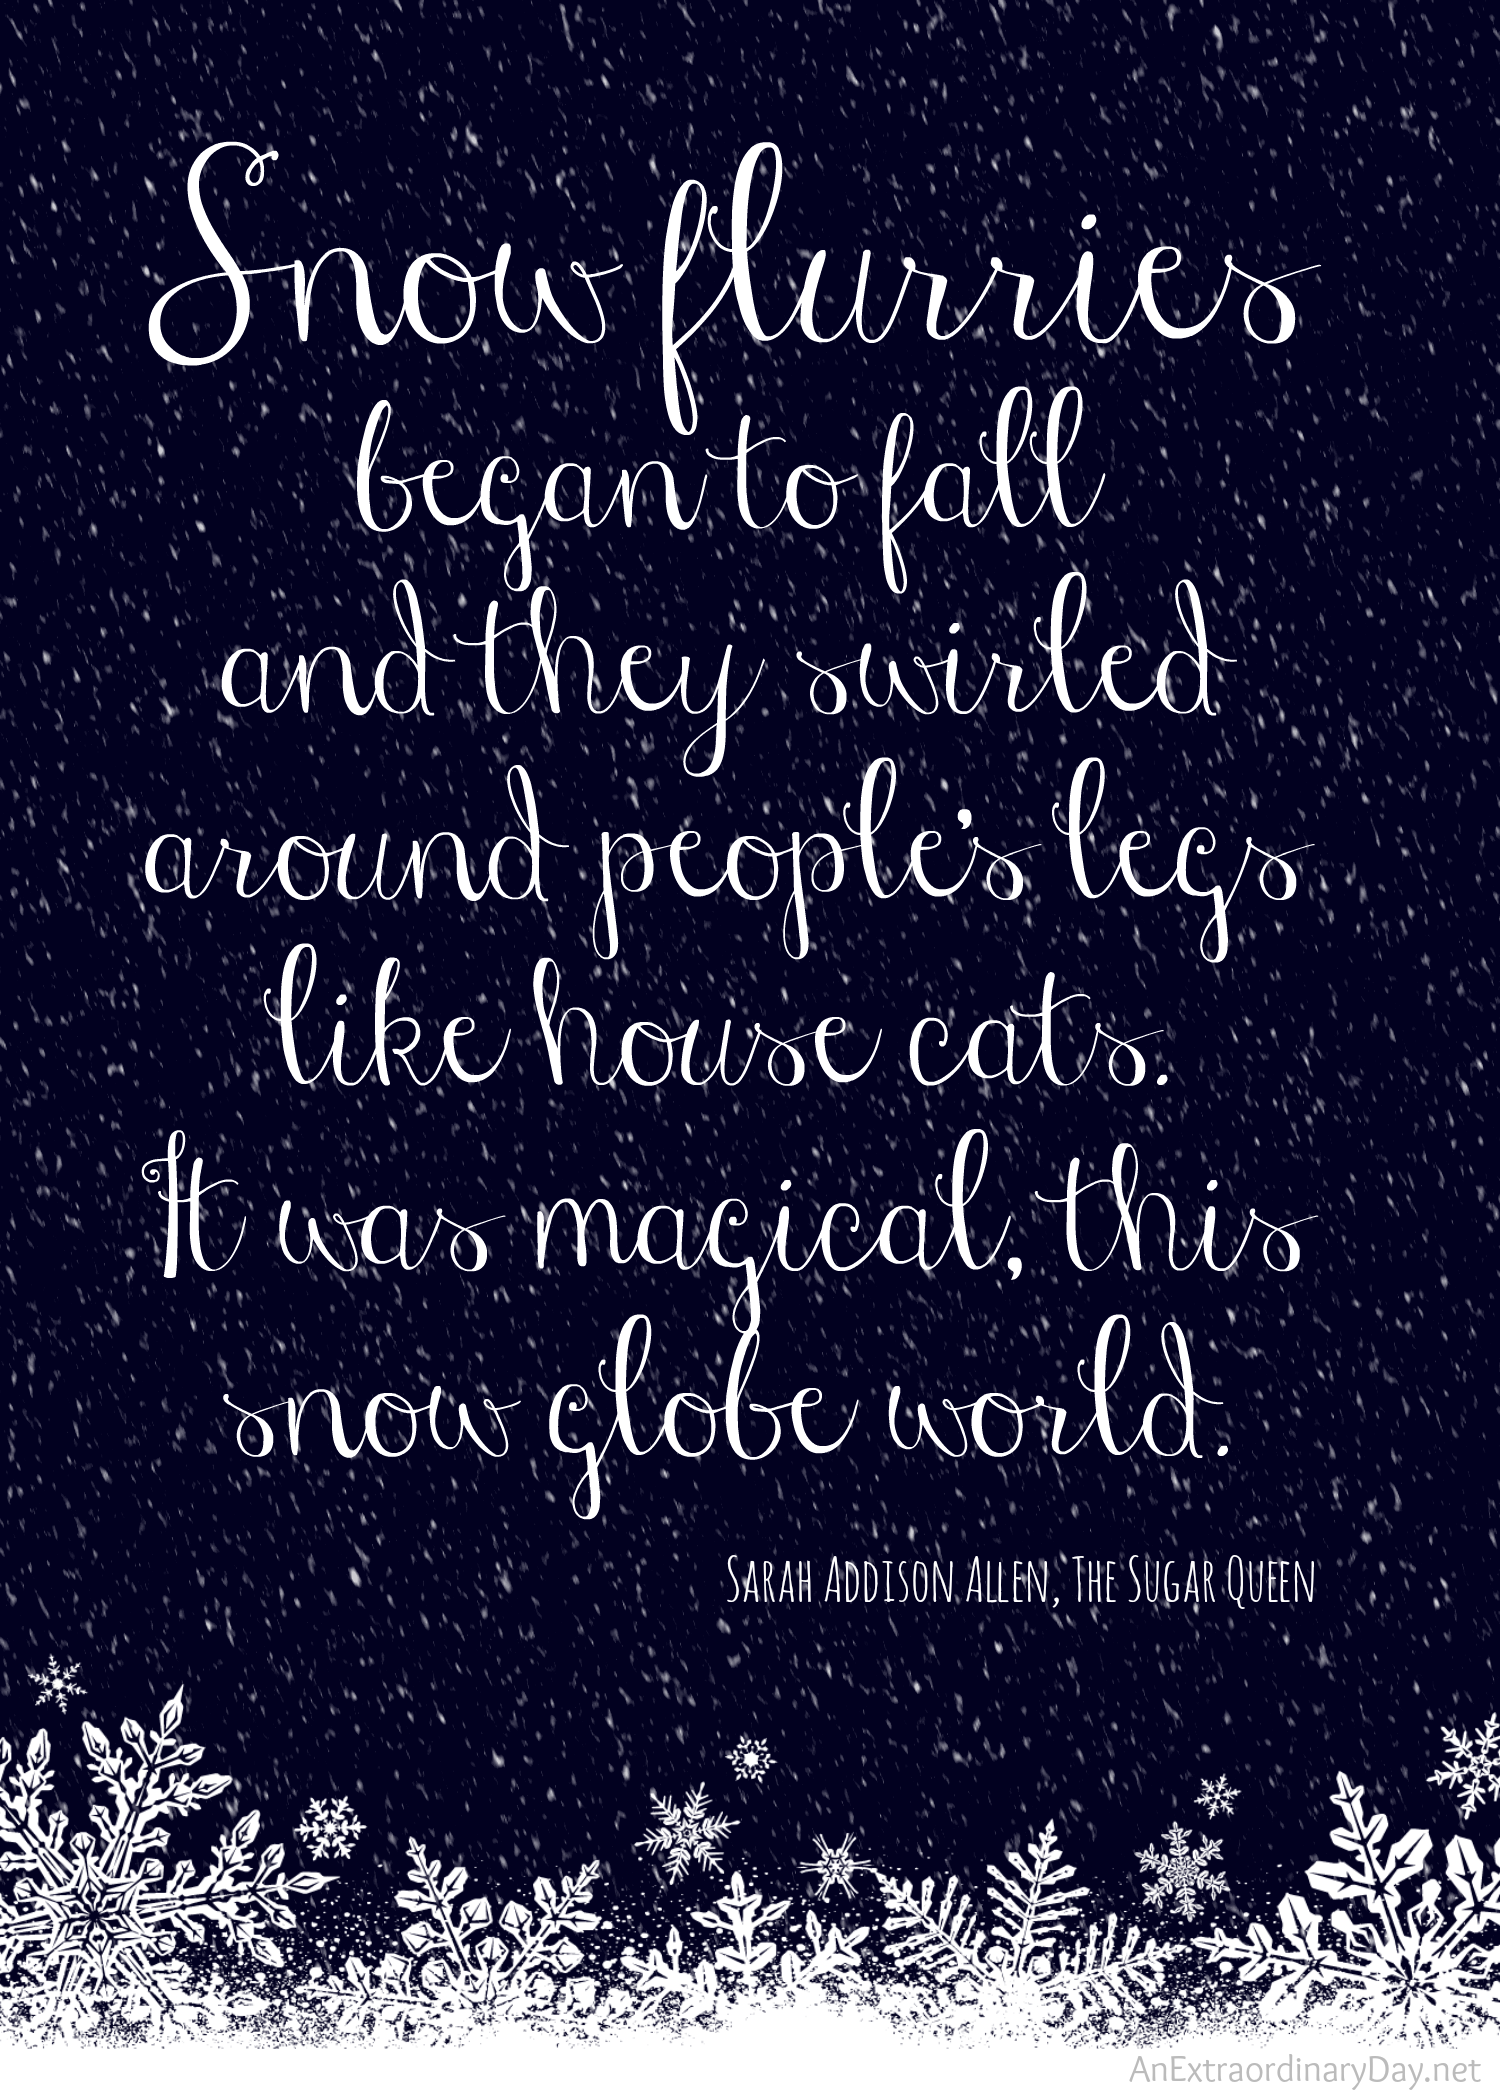 Snowflake Love Quotes Love Quotes About Snow Quotes About Love And Snow Quotesgram.